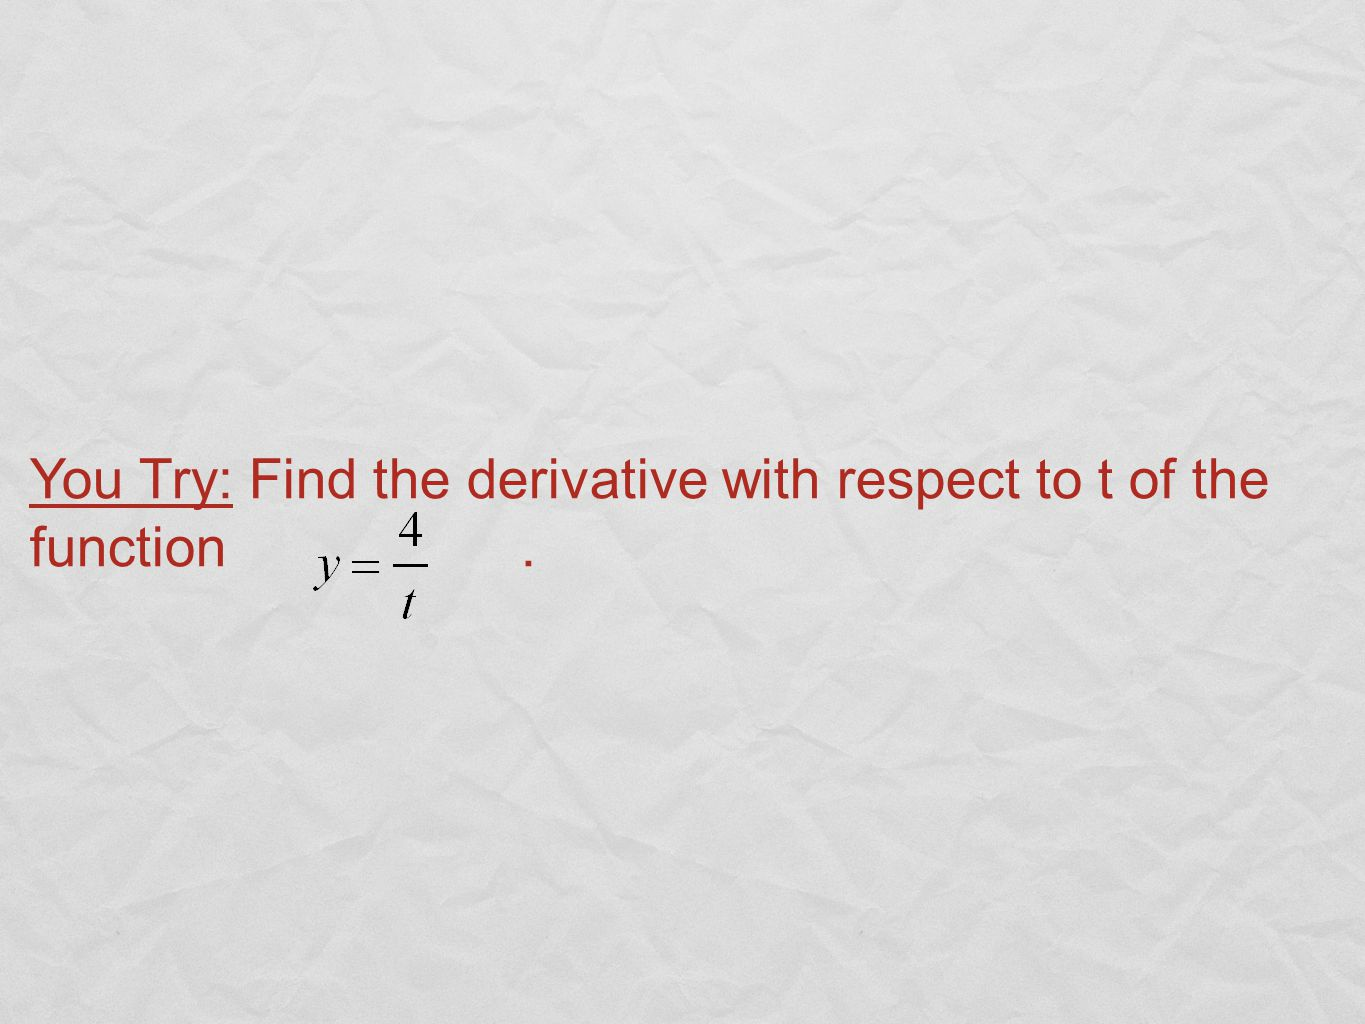 You Try: Find the derivative with respect to t of the function.